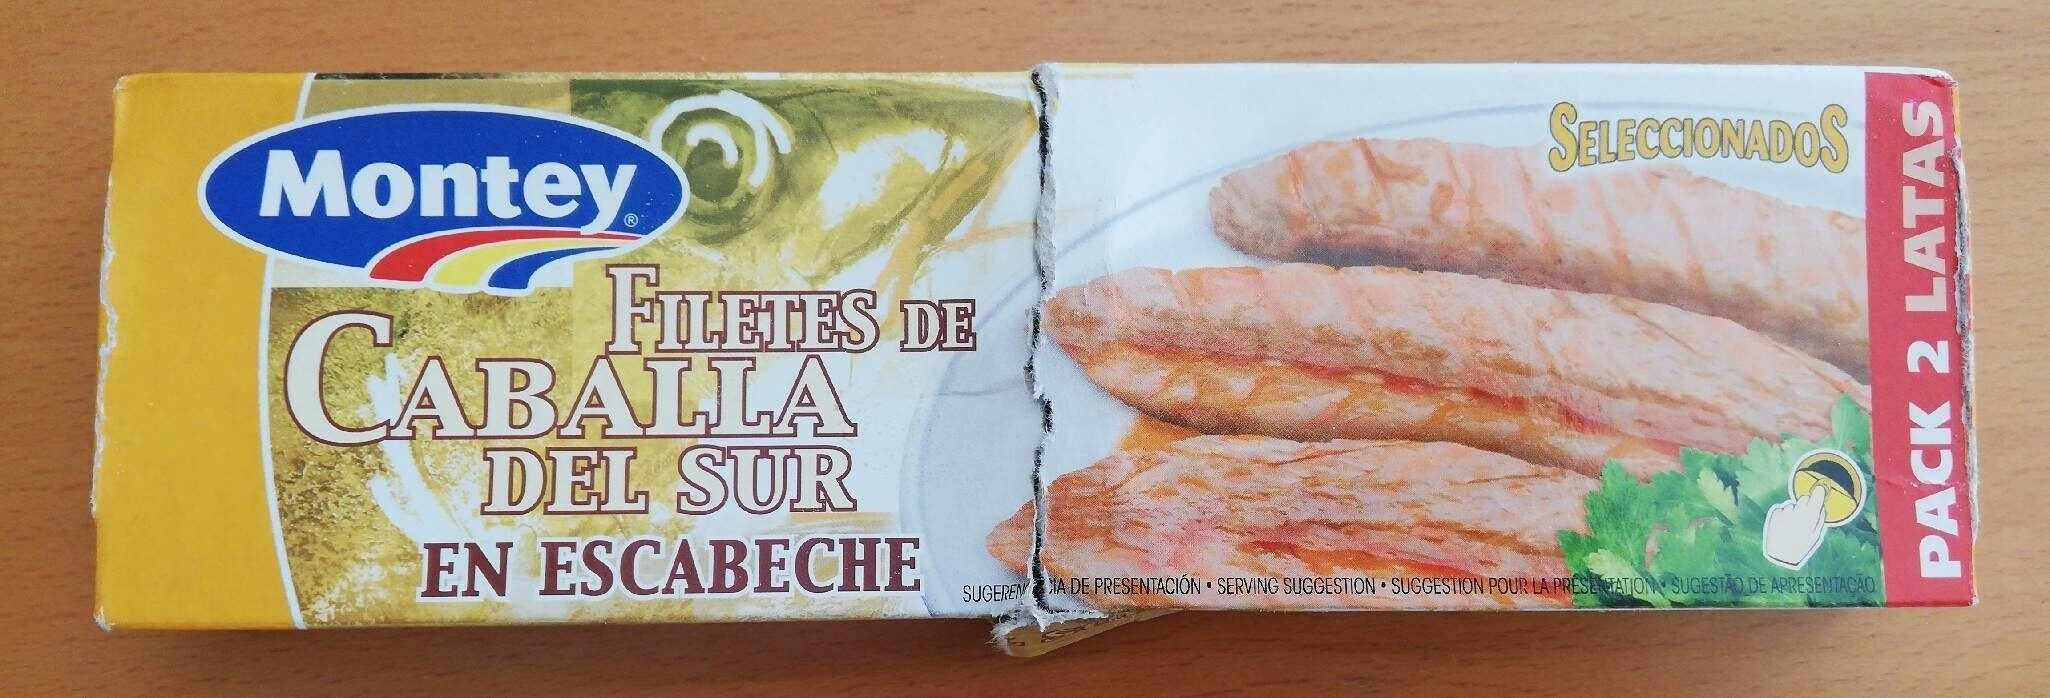 FILETES DE CABALLA DEL SUR EN ESCABECHE - Product - en